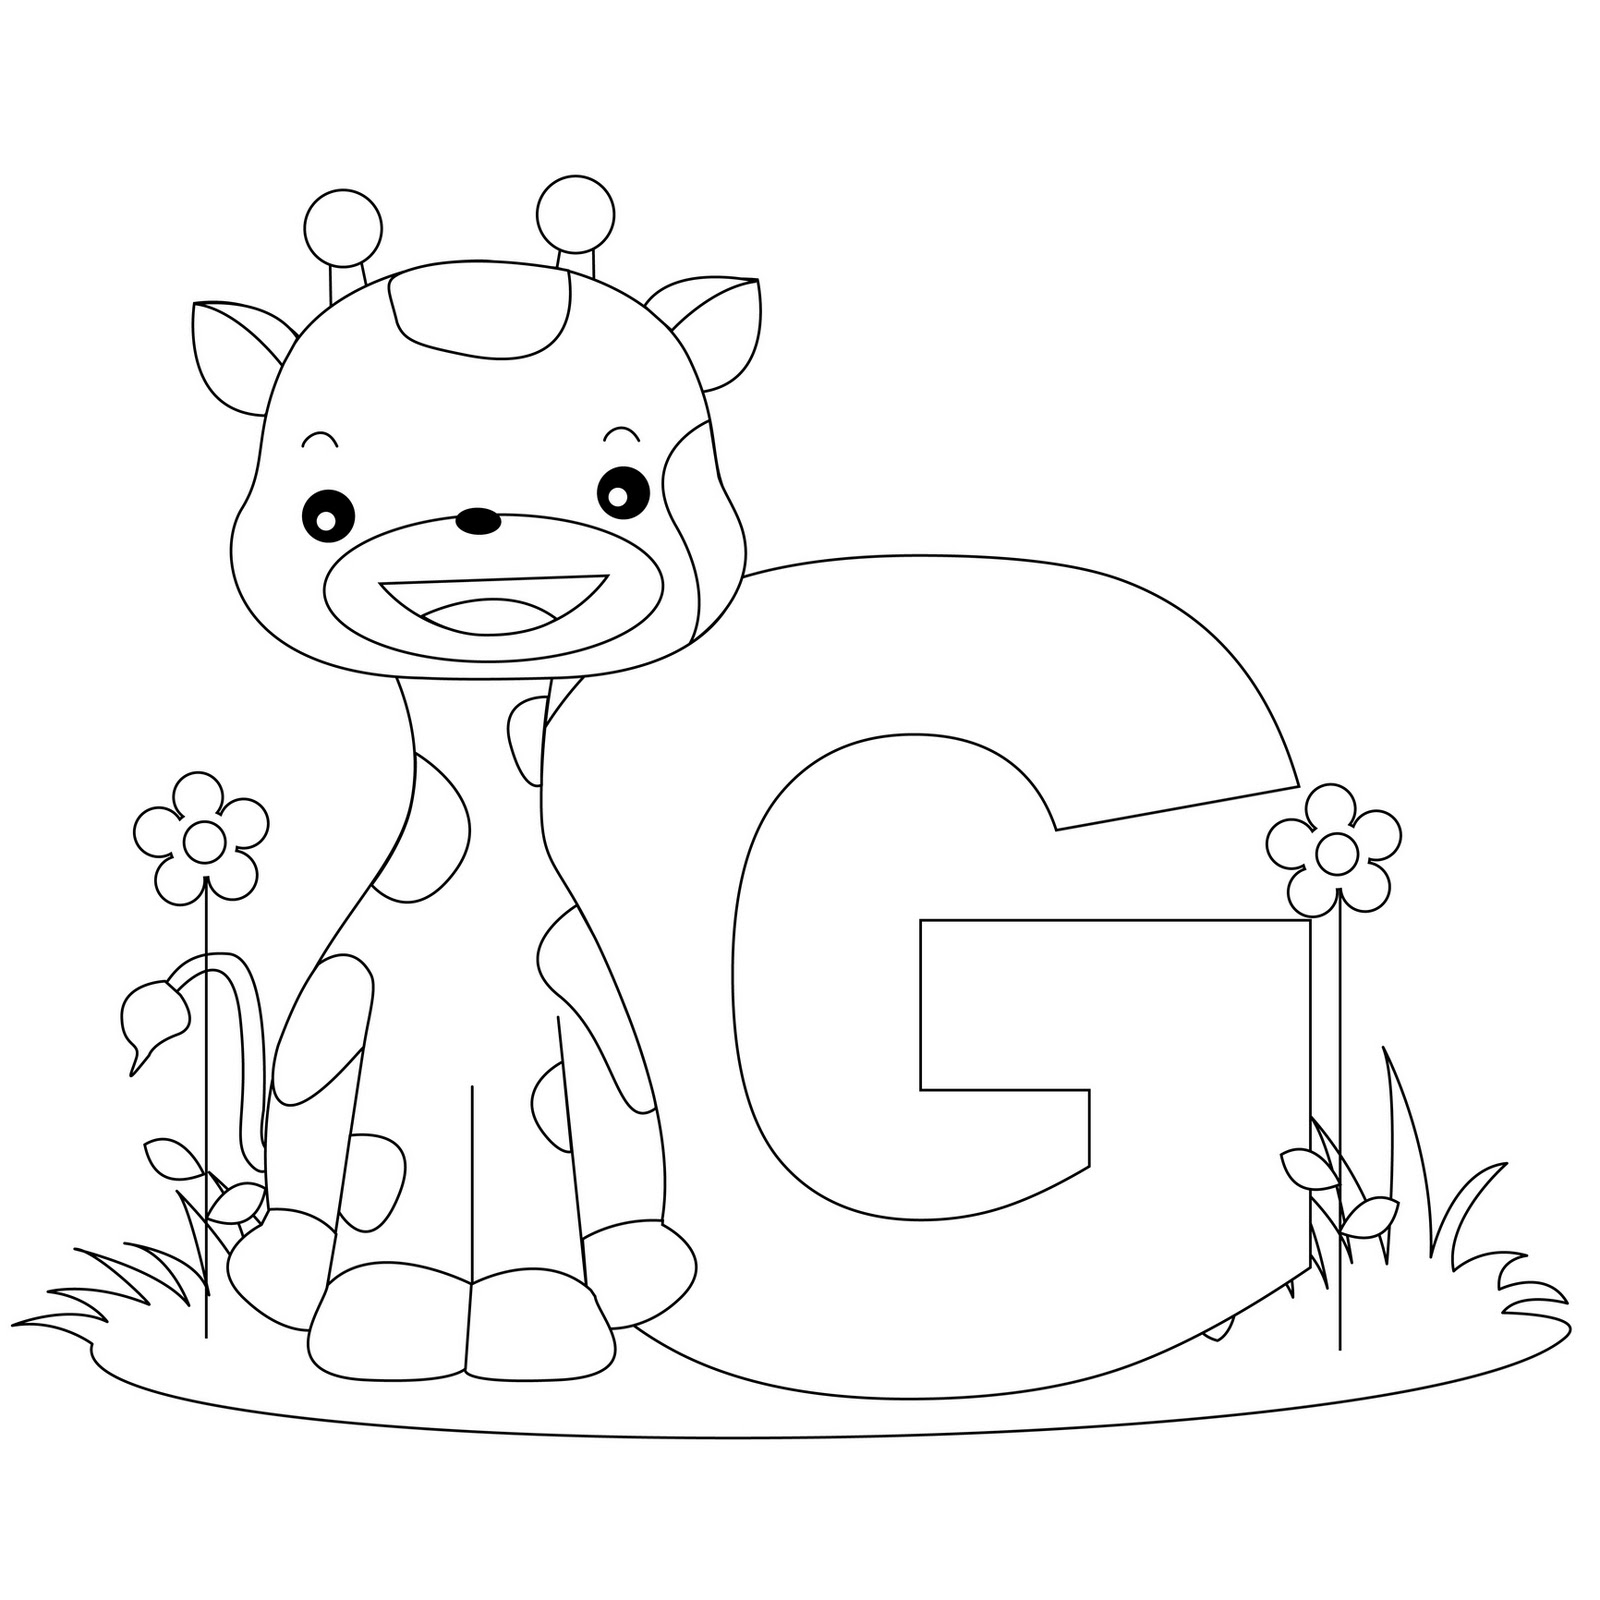 G Coloring Pages At Getcolorings